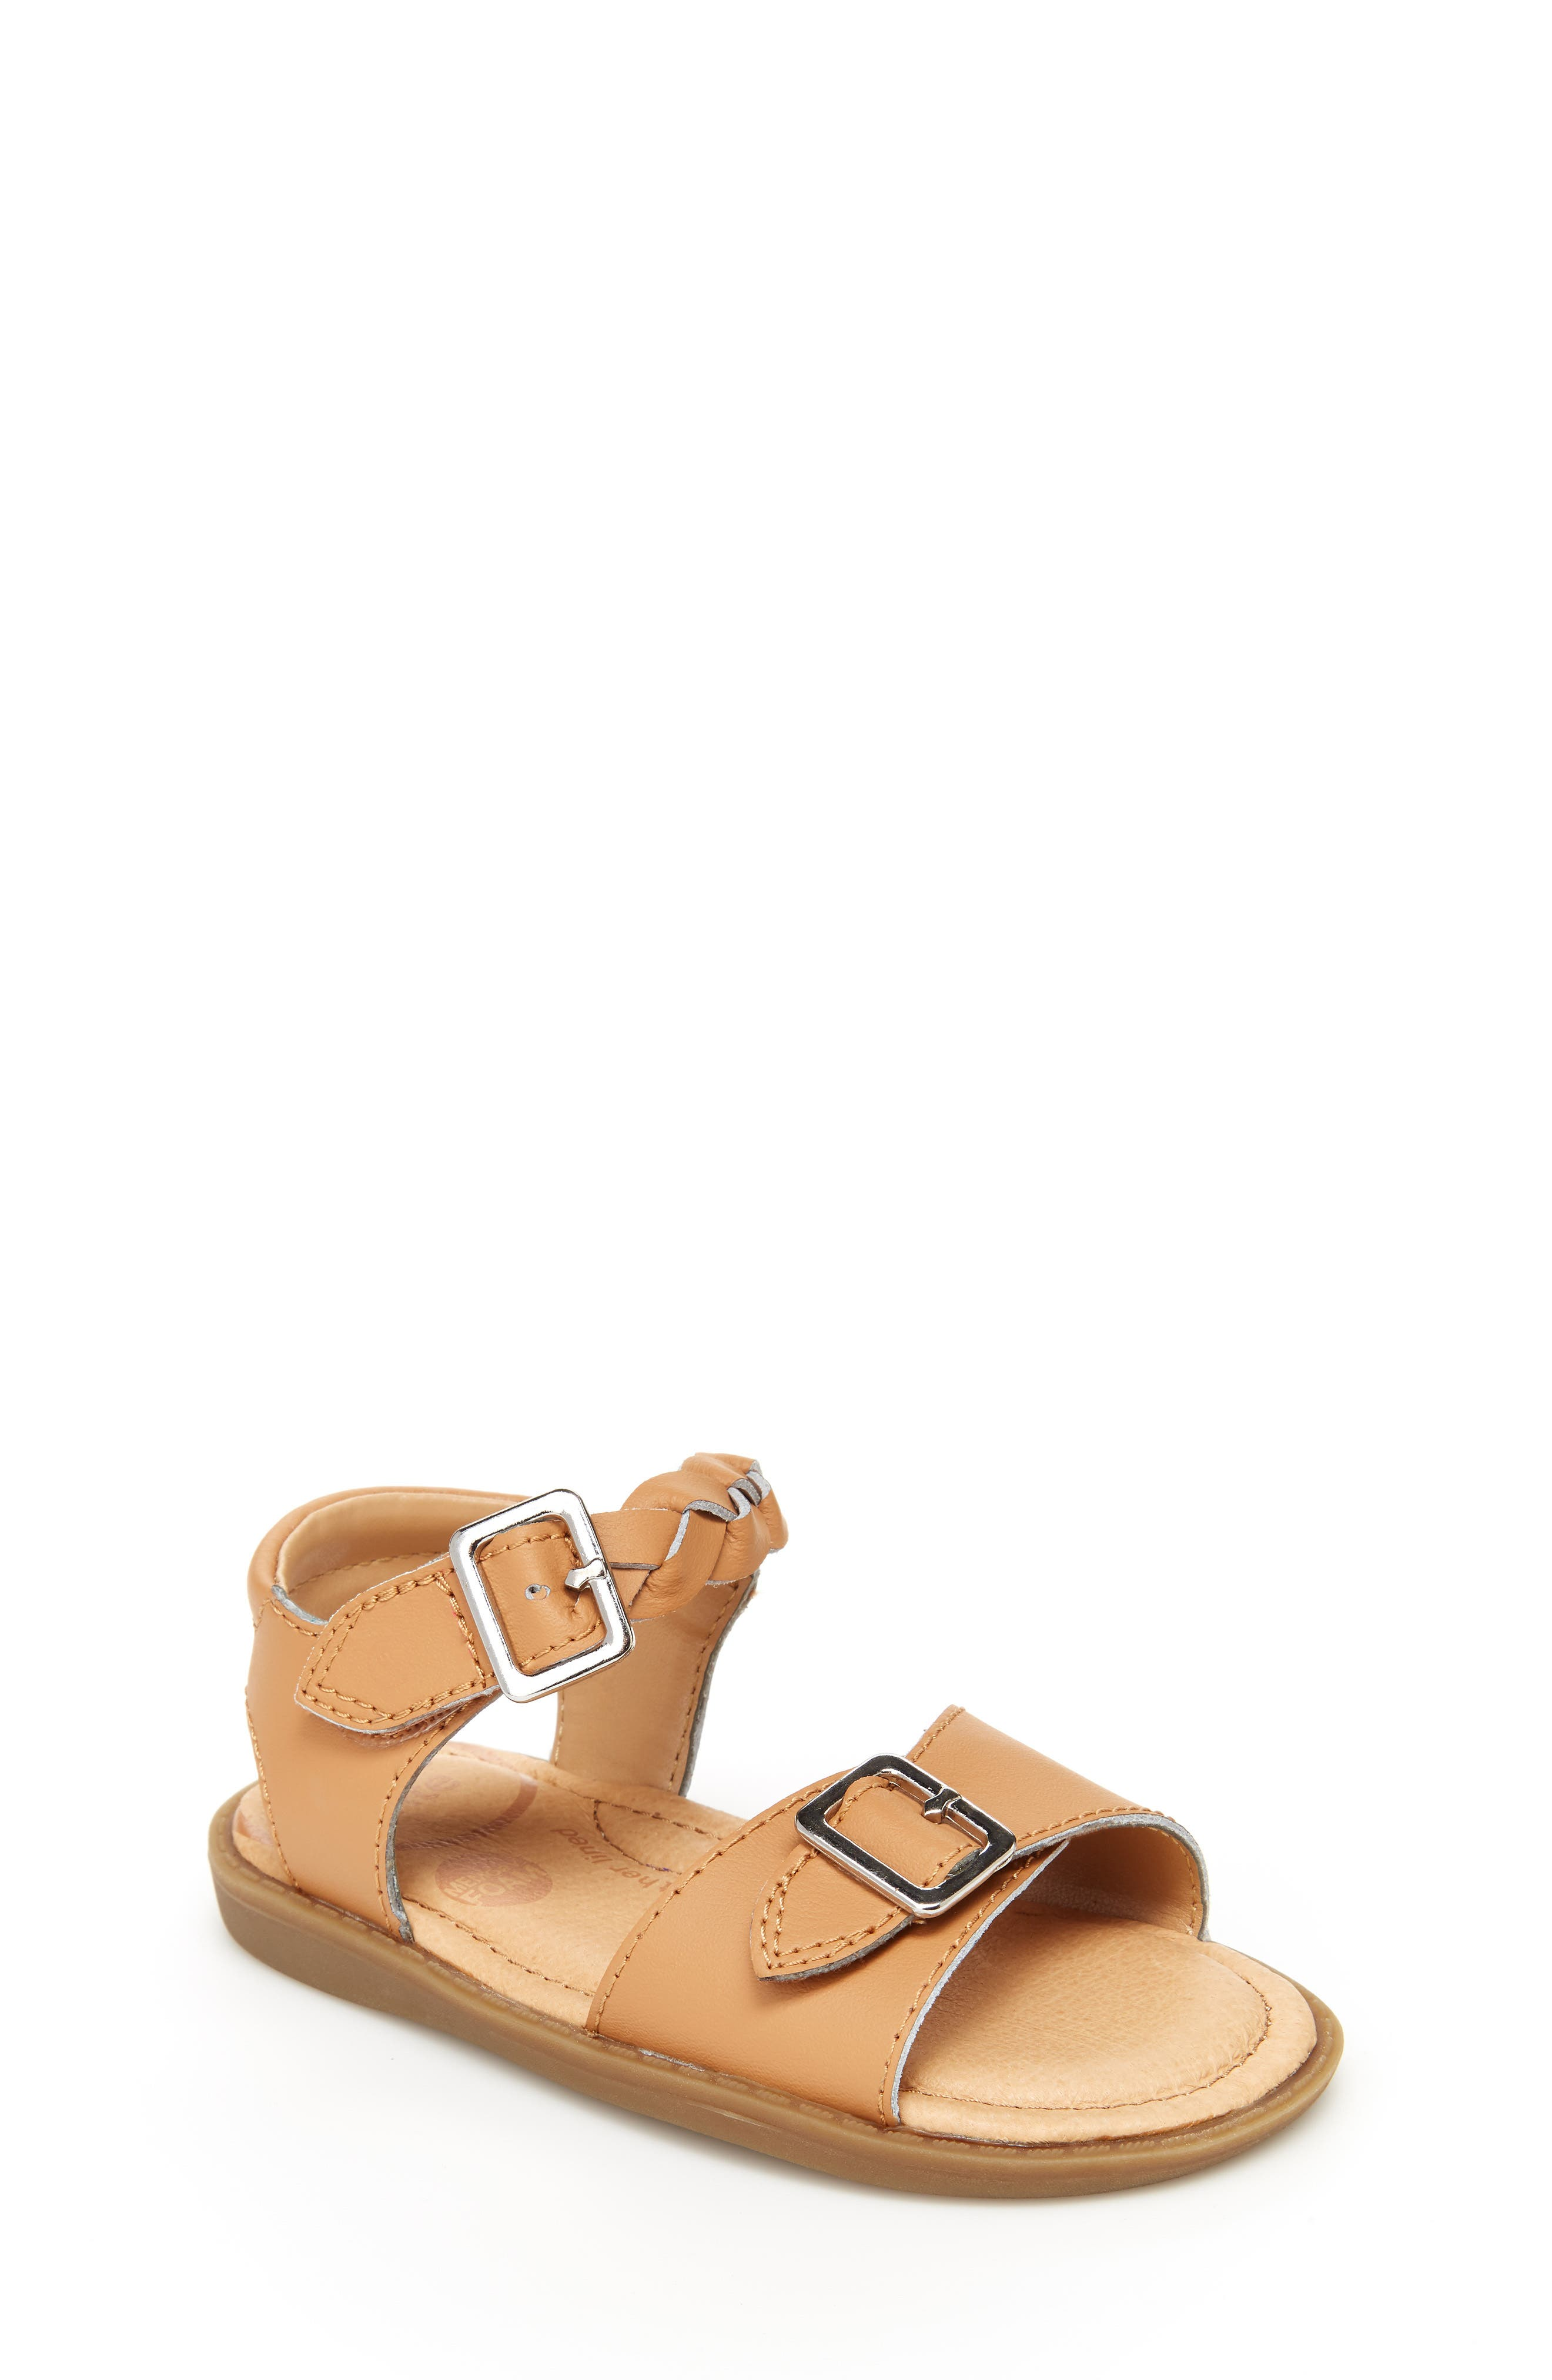 A braided ankle strap adds a pretty touch to a buckled sandal fitted with a cushy memory foam footbed-so it\\\'s cute and comfy for the playground or the party. Style Name: Stride Rite Naomi Sandal (Baby, Walker & Toddler). Style Number: 5778479. Available in stores.